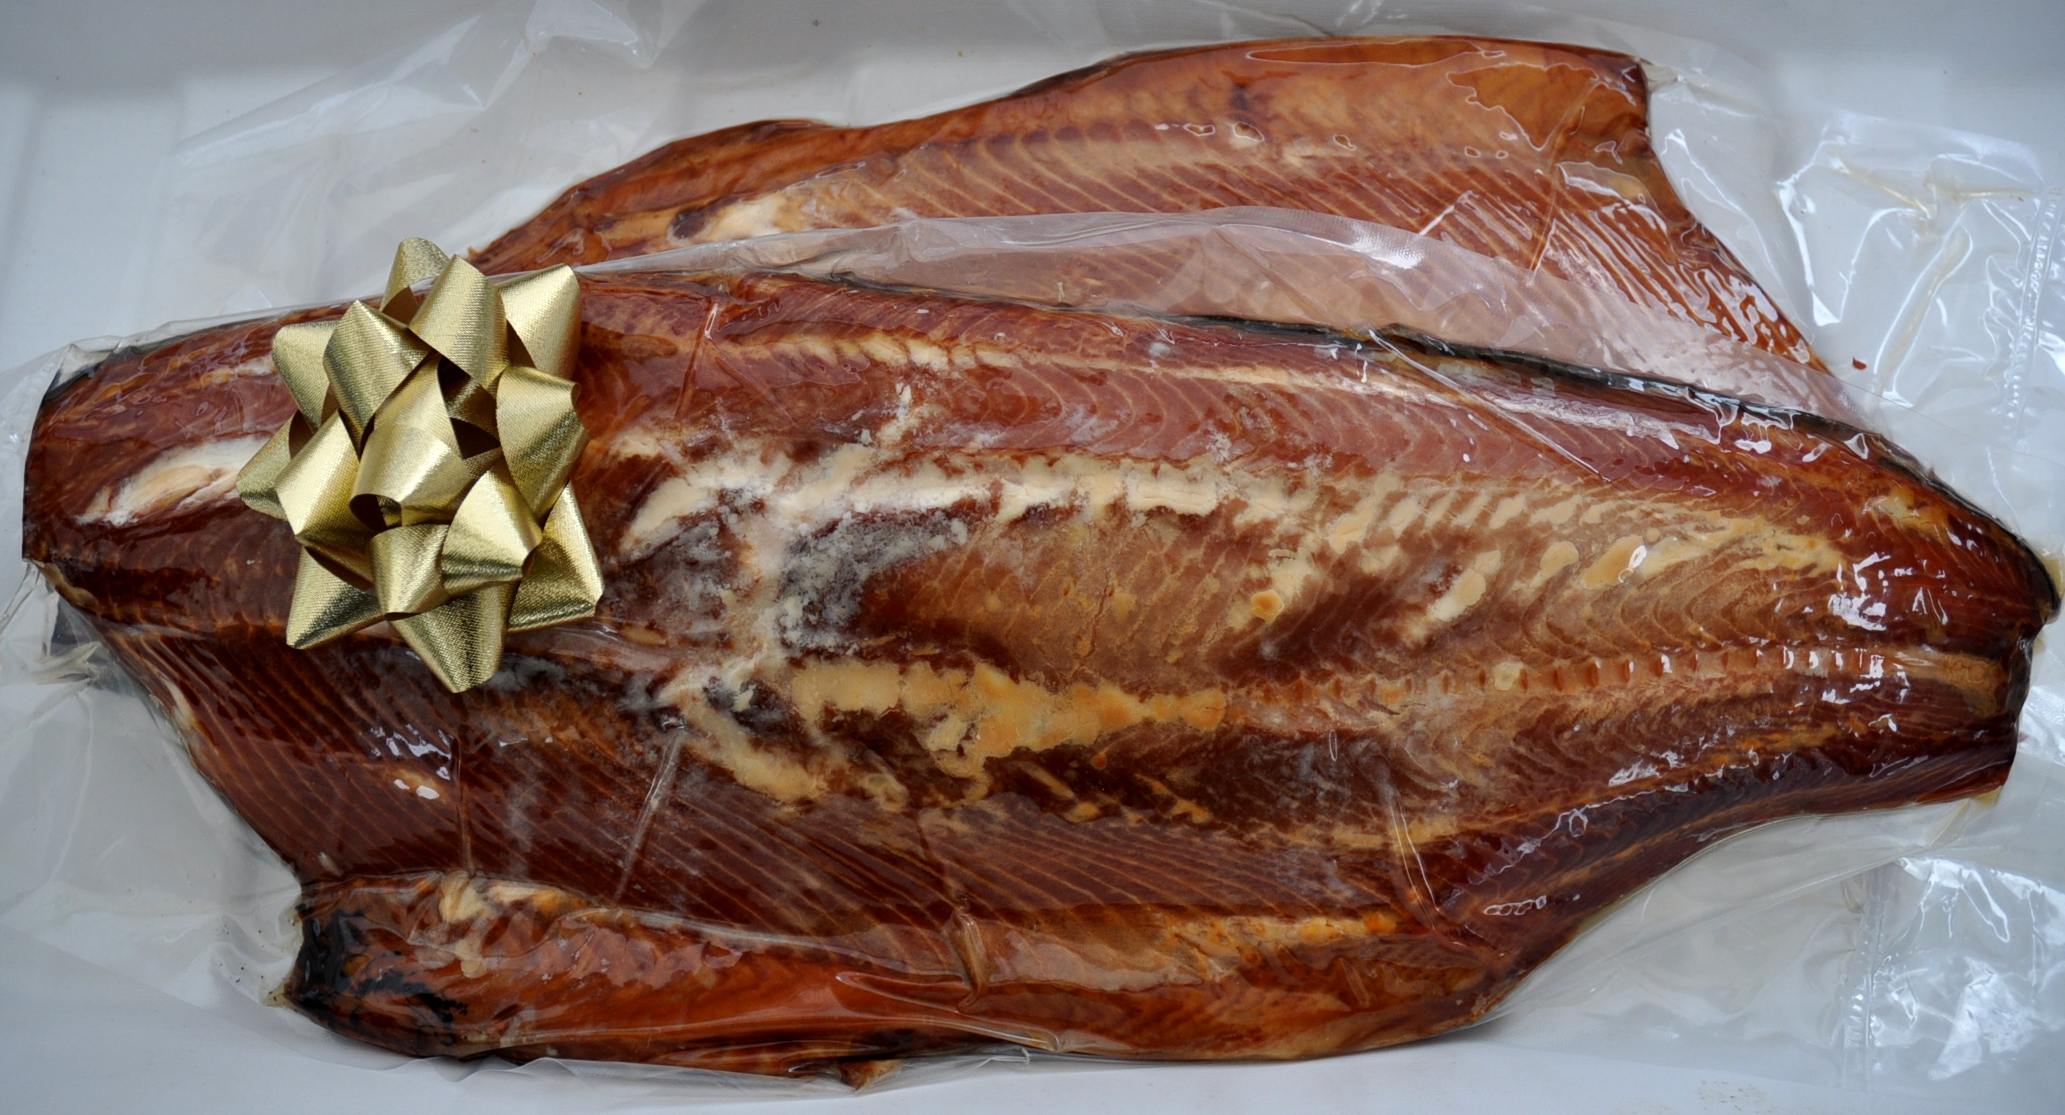 Smoked whole sides of white king salmon from Wilson Fish. Photo copyright 2010 by Zachary D. Lyons.